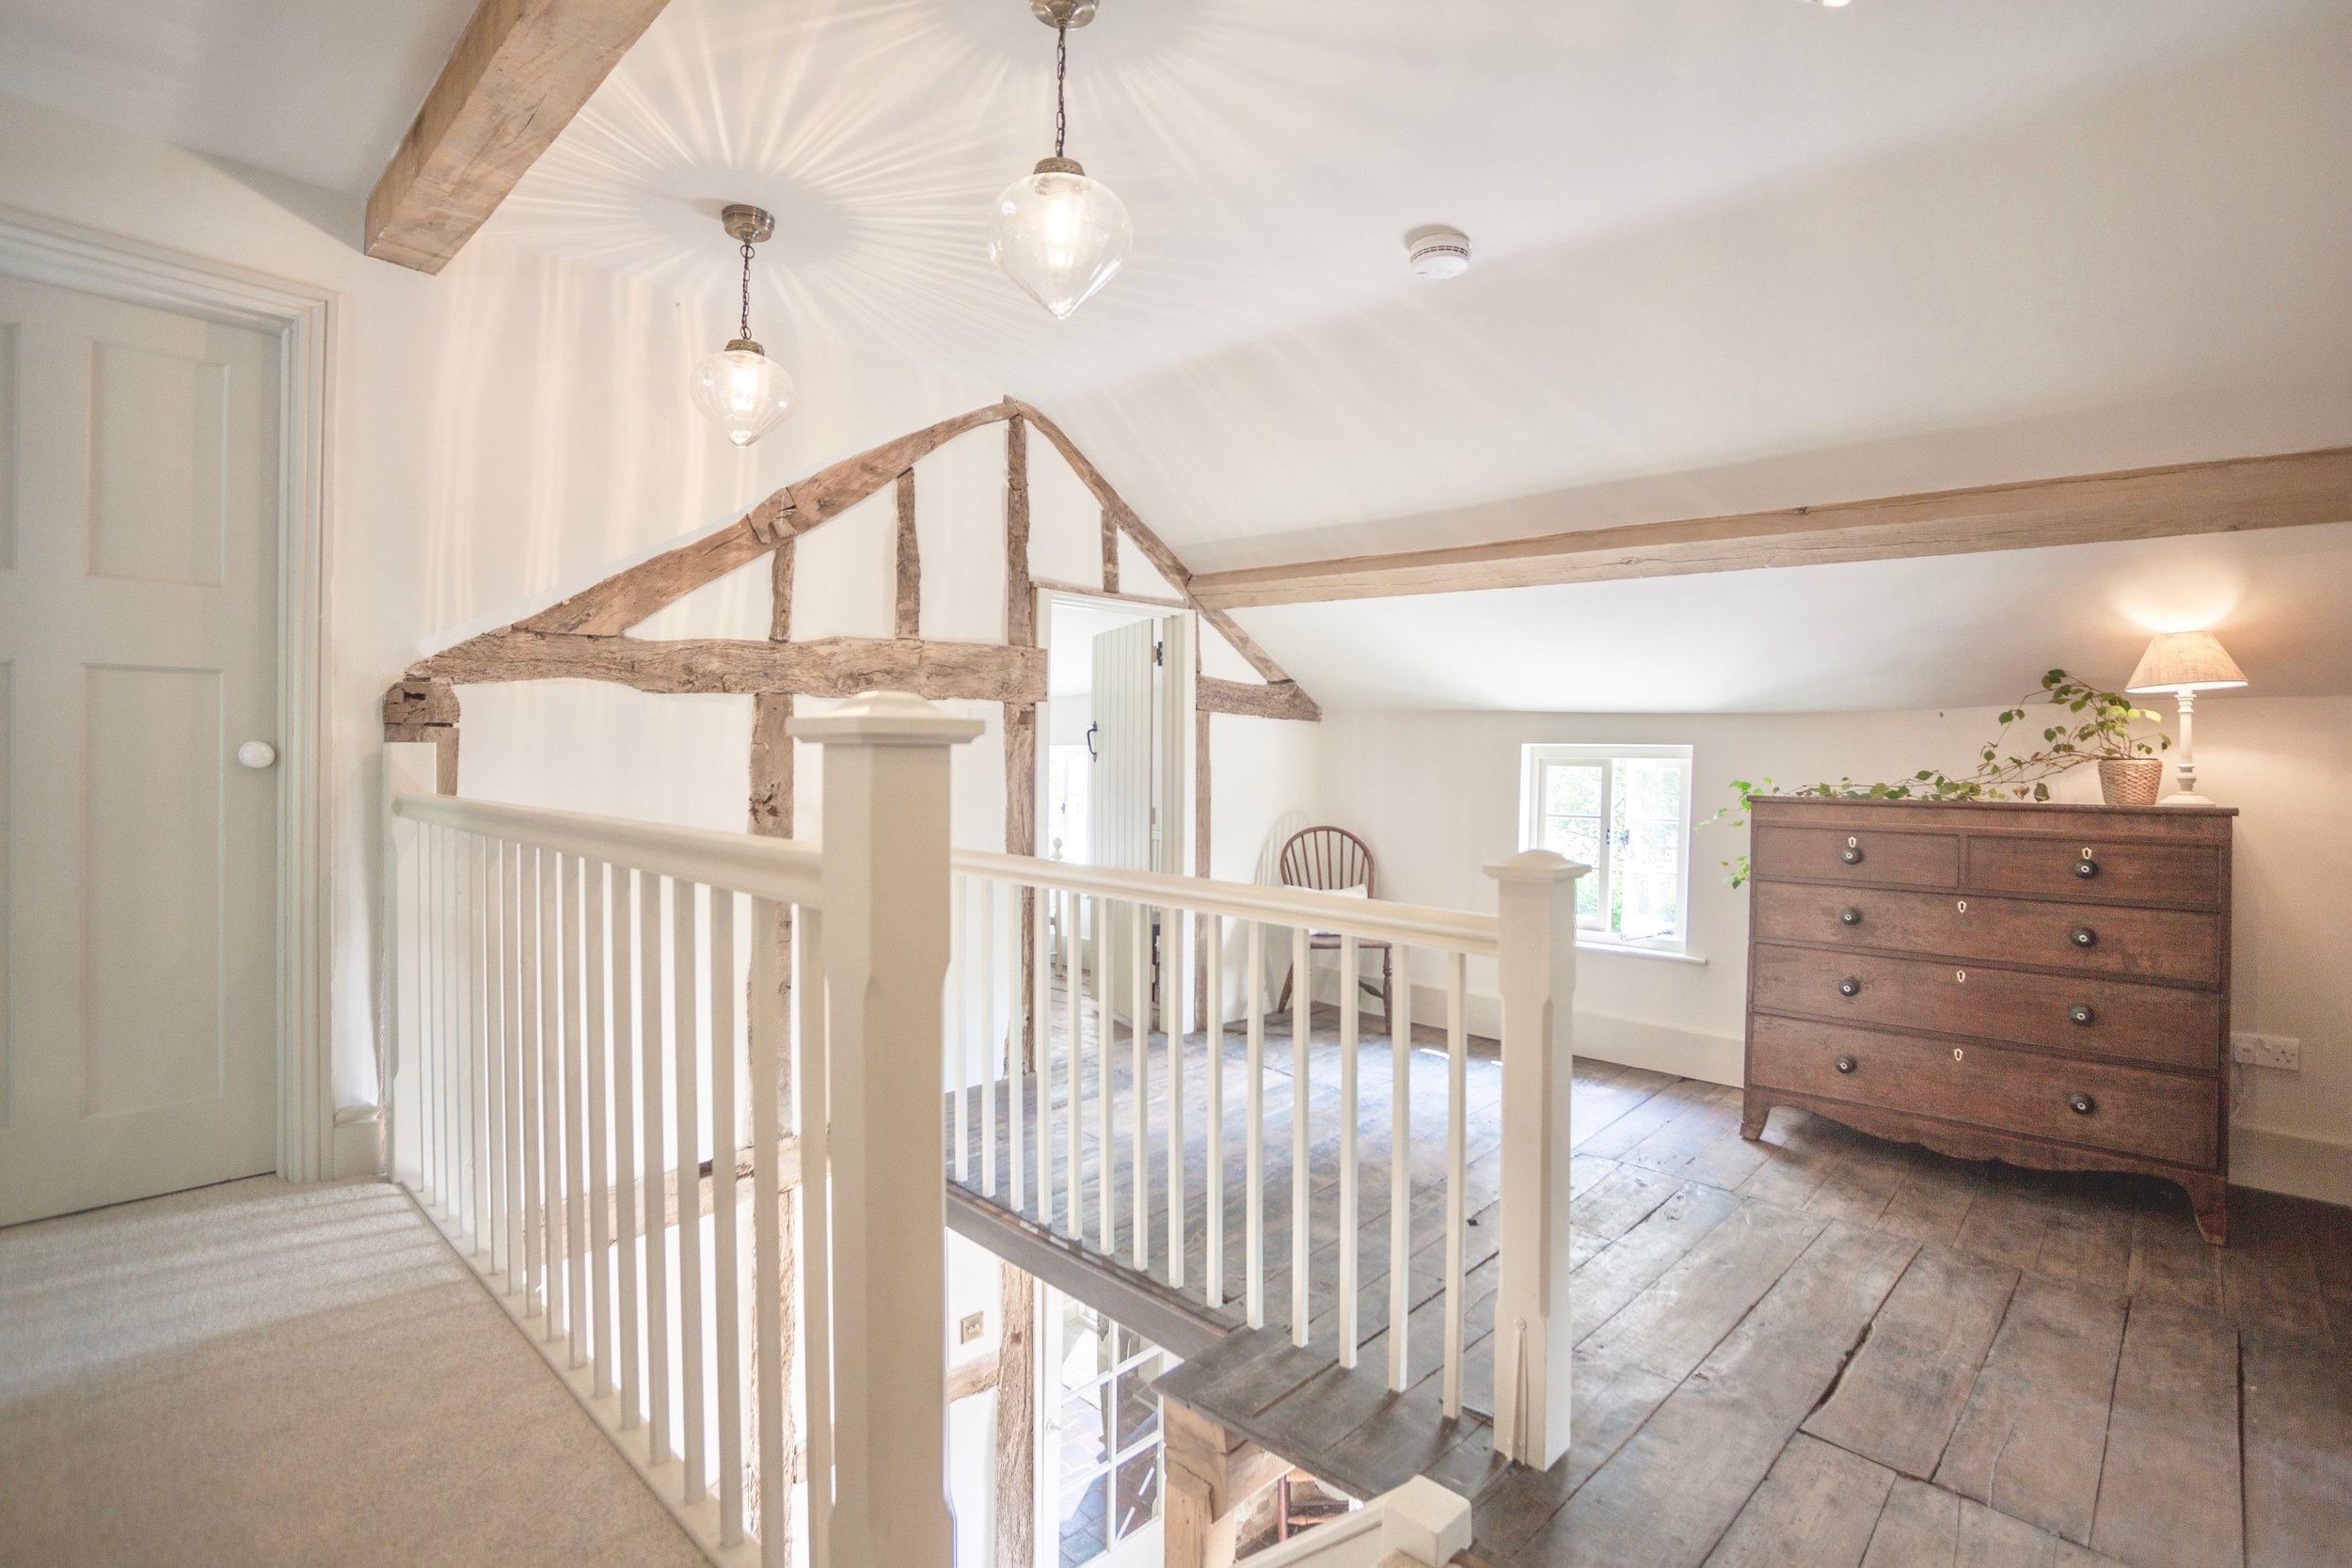 Herefordshire Farmhosue Project - Designed by Hannah Llewelyn Interior Design - hlinteriors.co.uk18.jpg